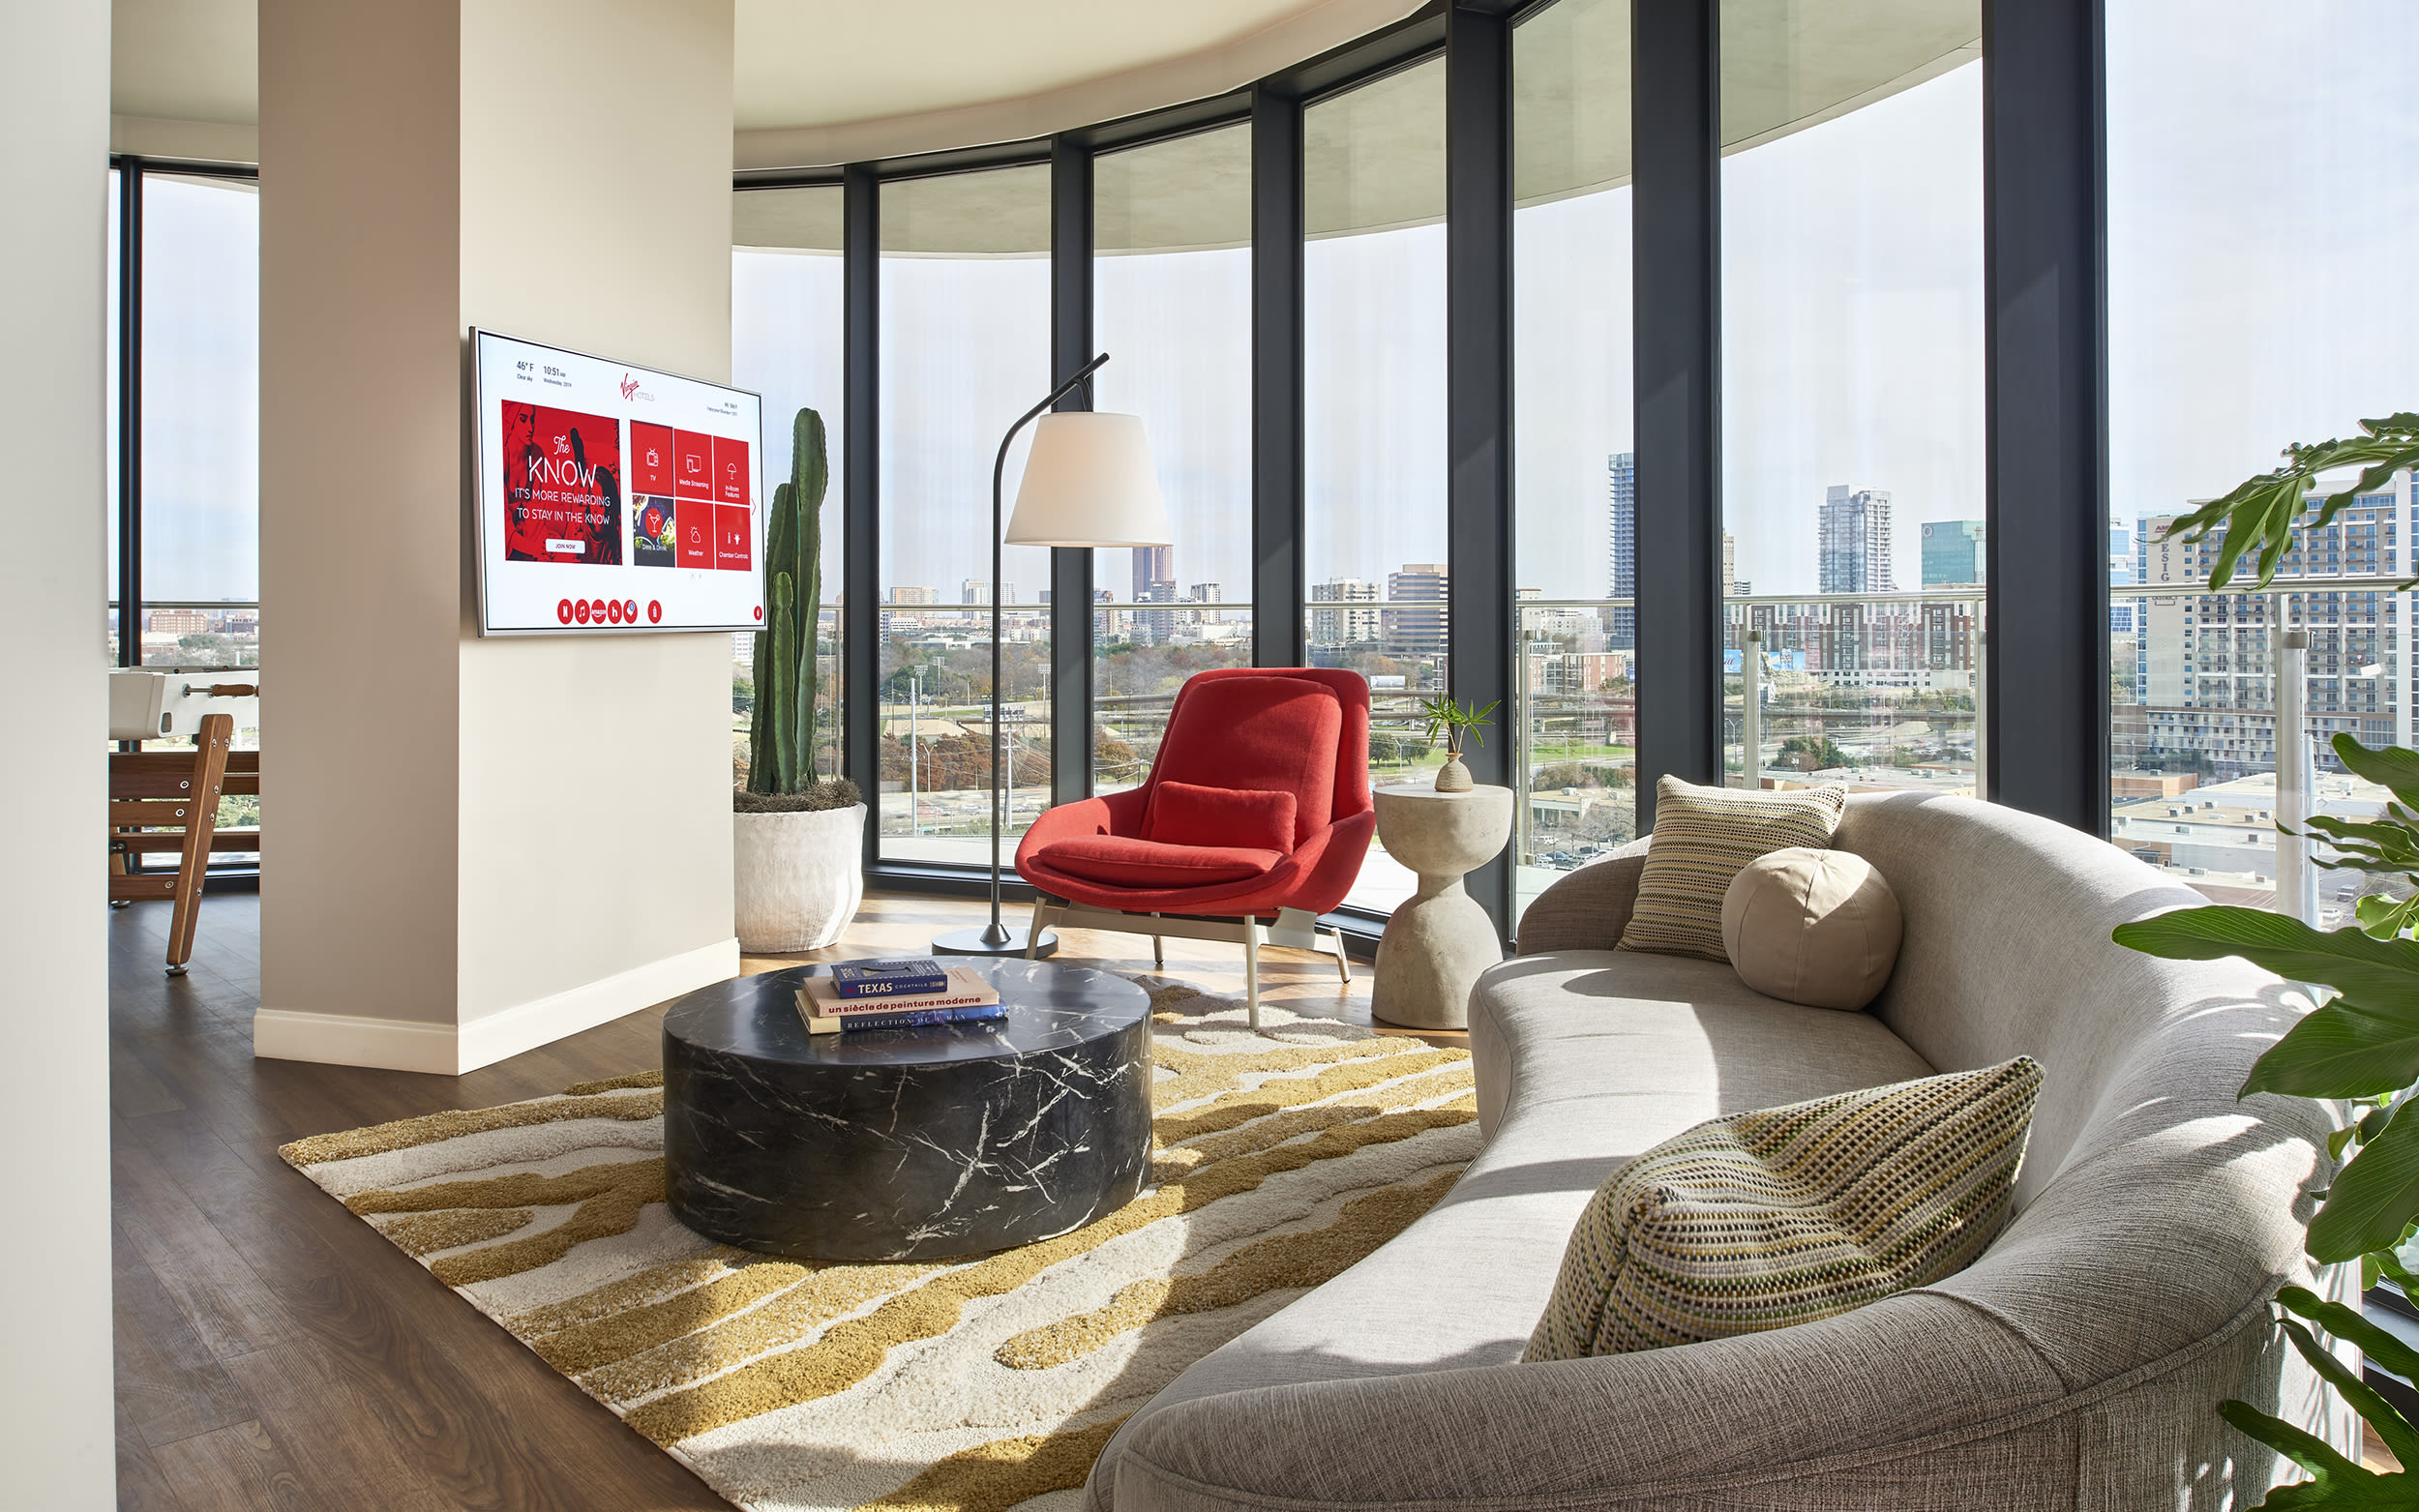 The TV and SMEG fridge in a Chamber at Virgin Hotels Dallas